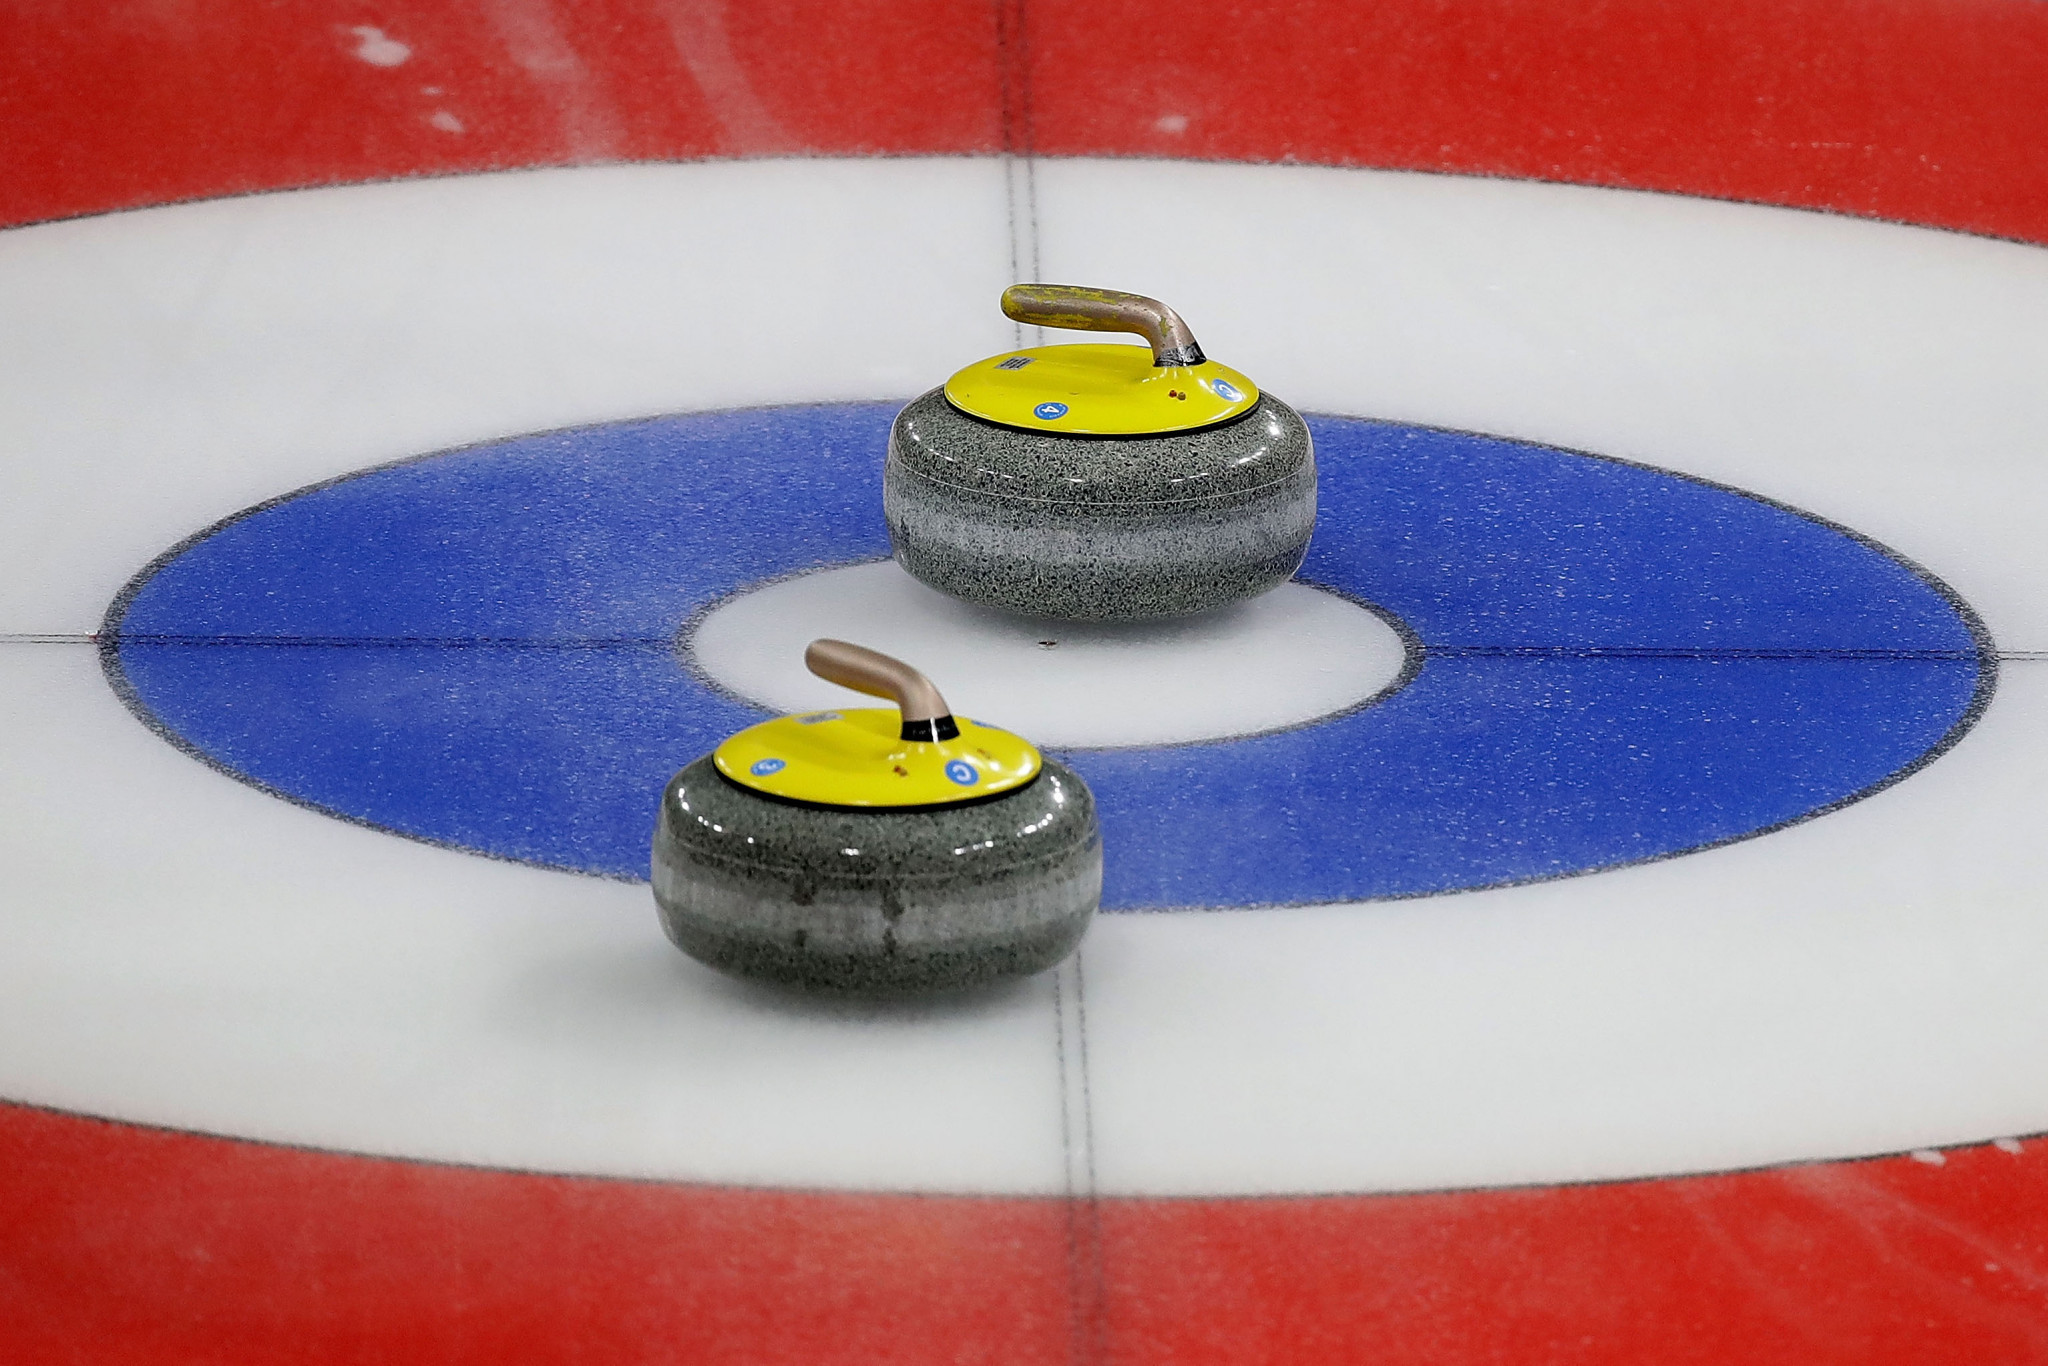 Fredericton to host 2022 Continental Cup of Curling